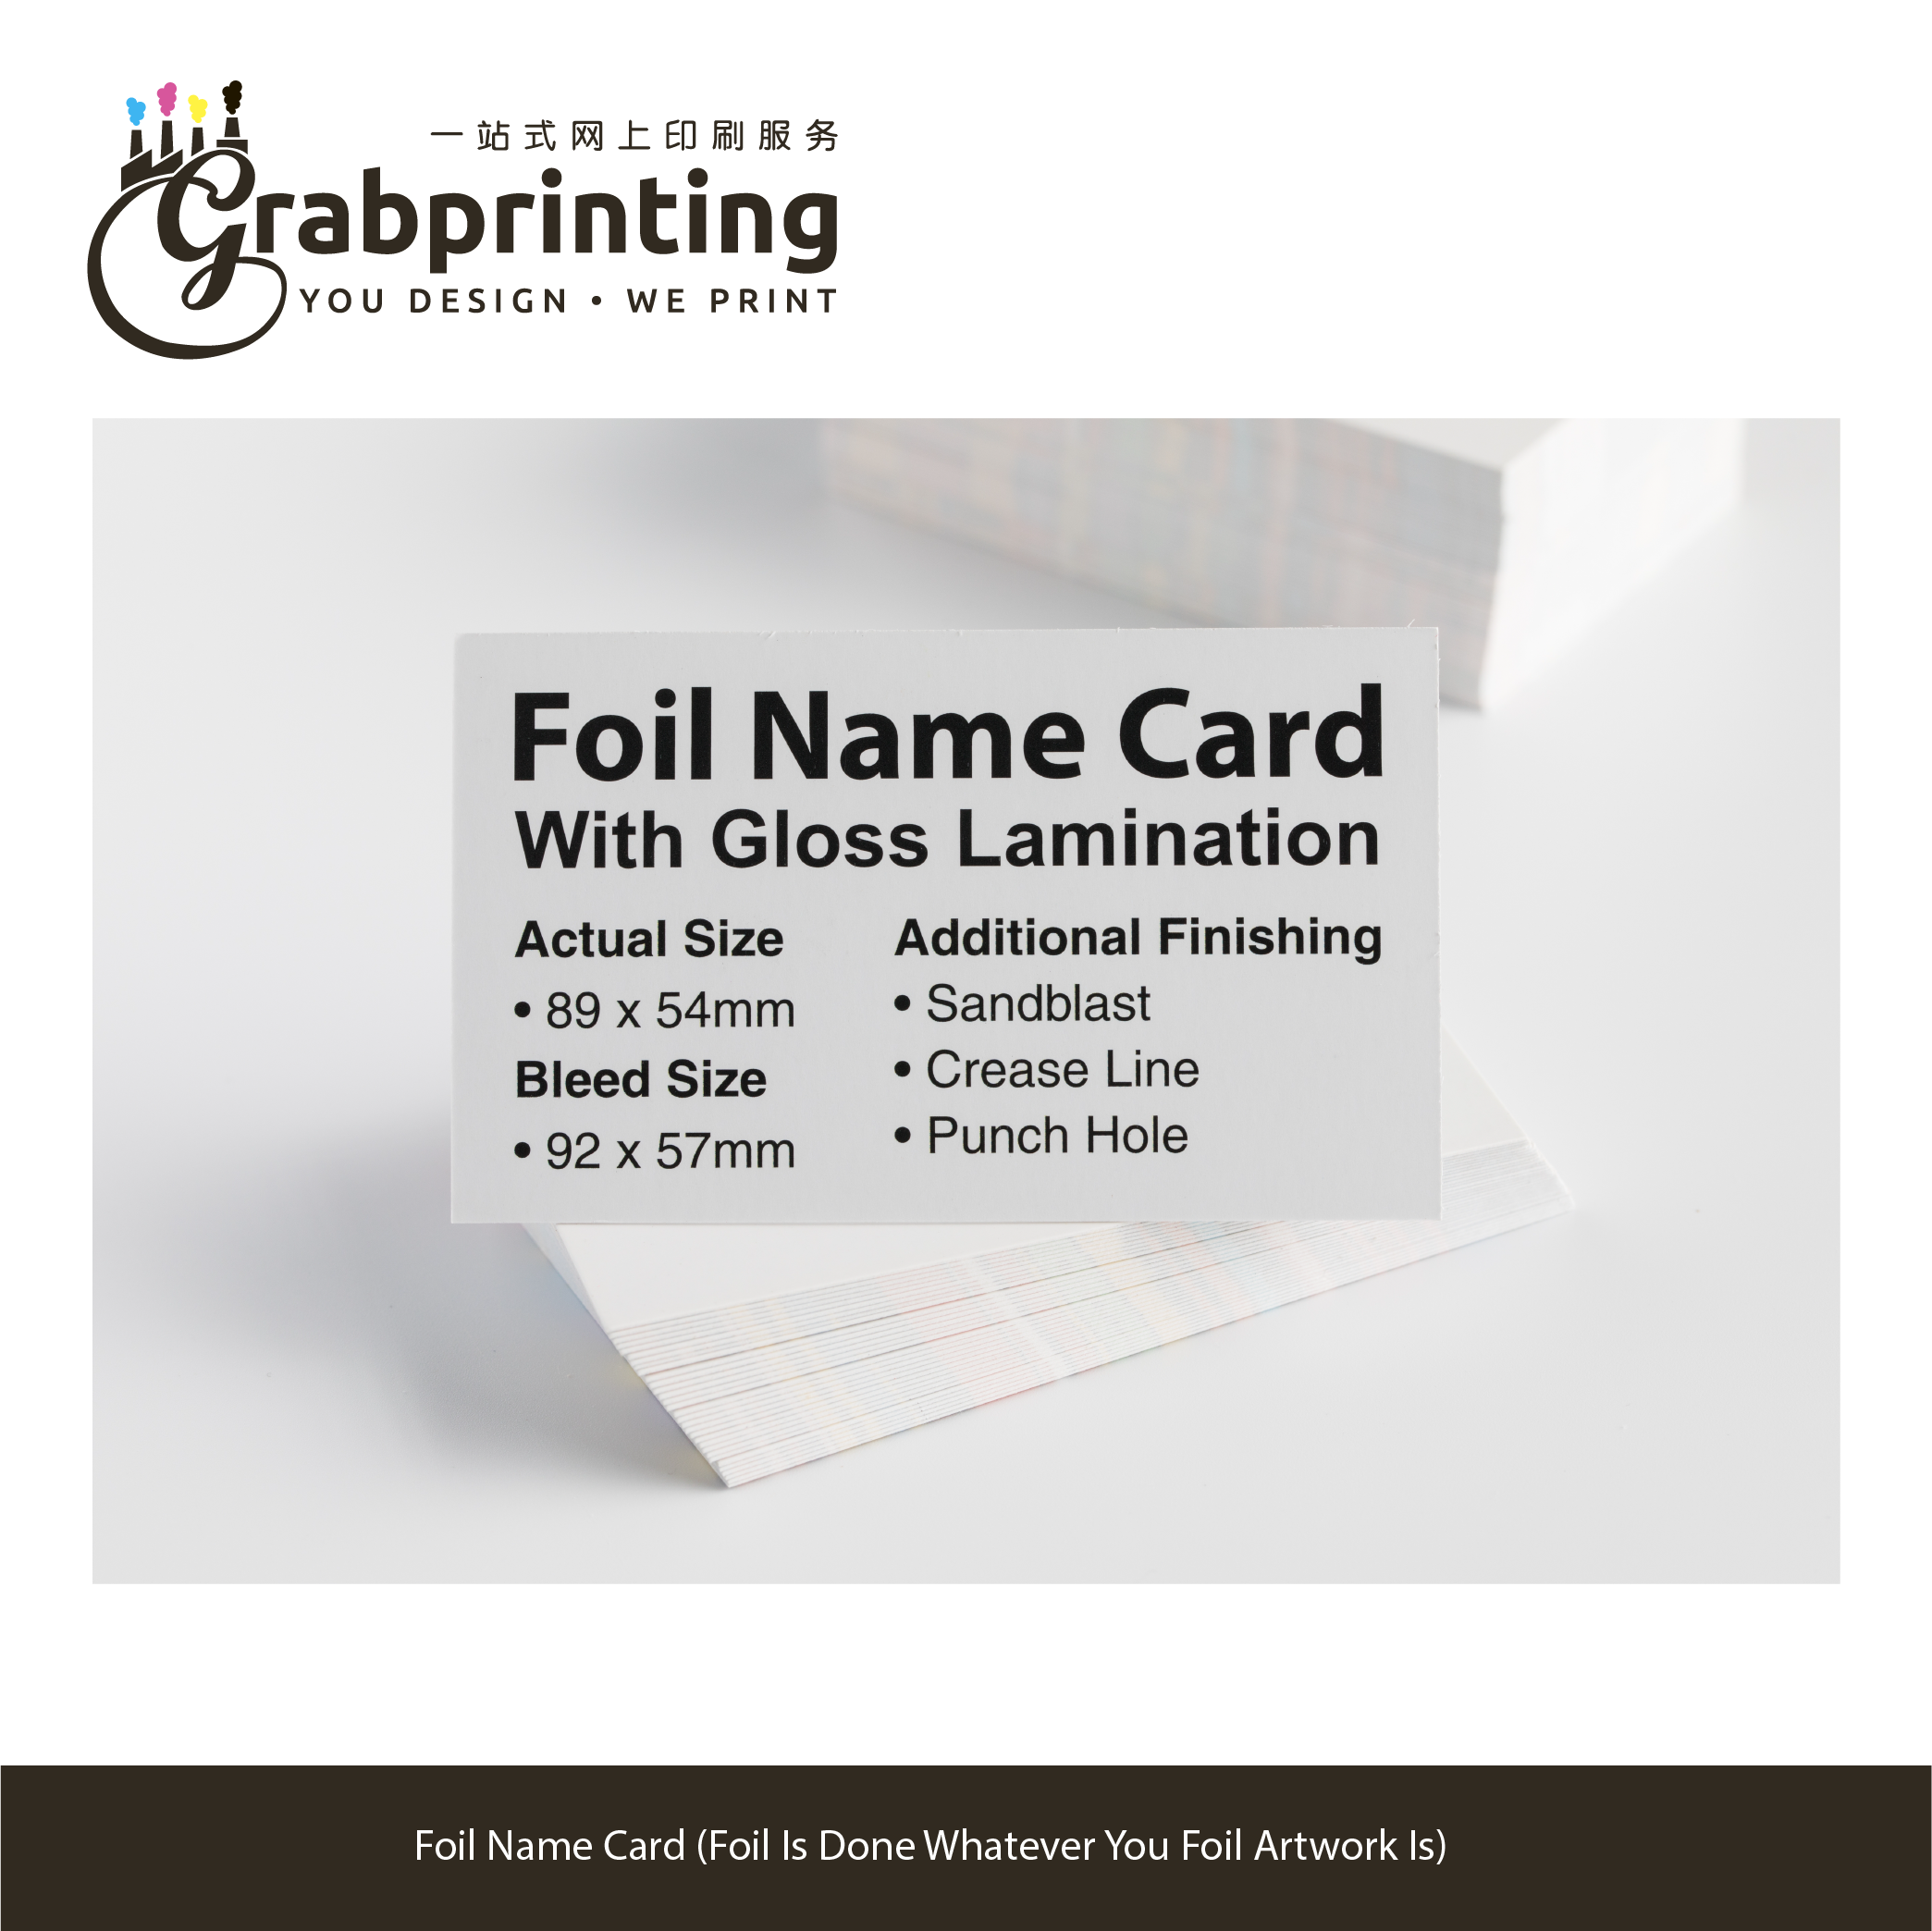 name cards Name Card (23 materials to choose from) grabprinting 39 Foil Name Card Foil Is Done Whatever You Foil Artwork Is 501px 501px